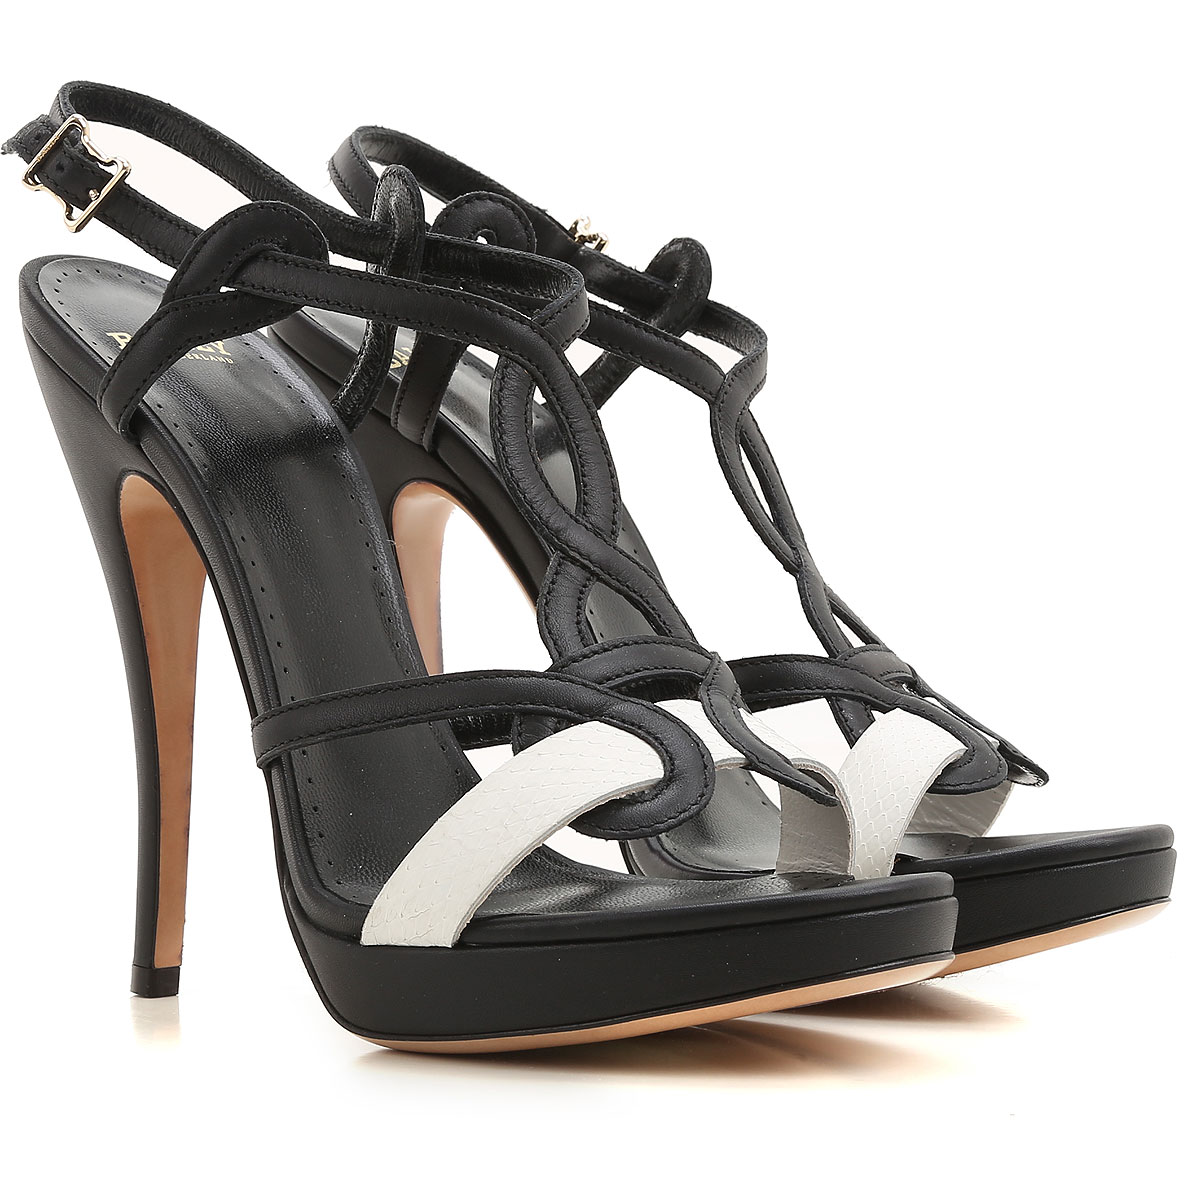 Bally Sandals for Women in Outlet Black USA - GOOFASH